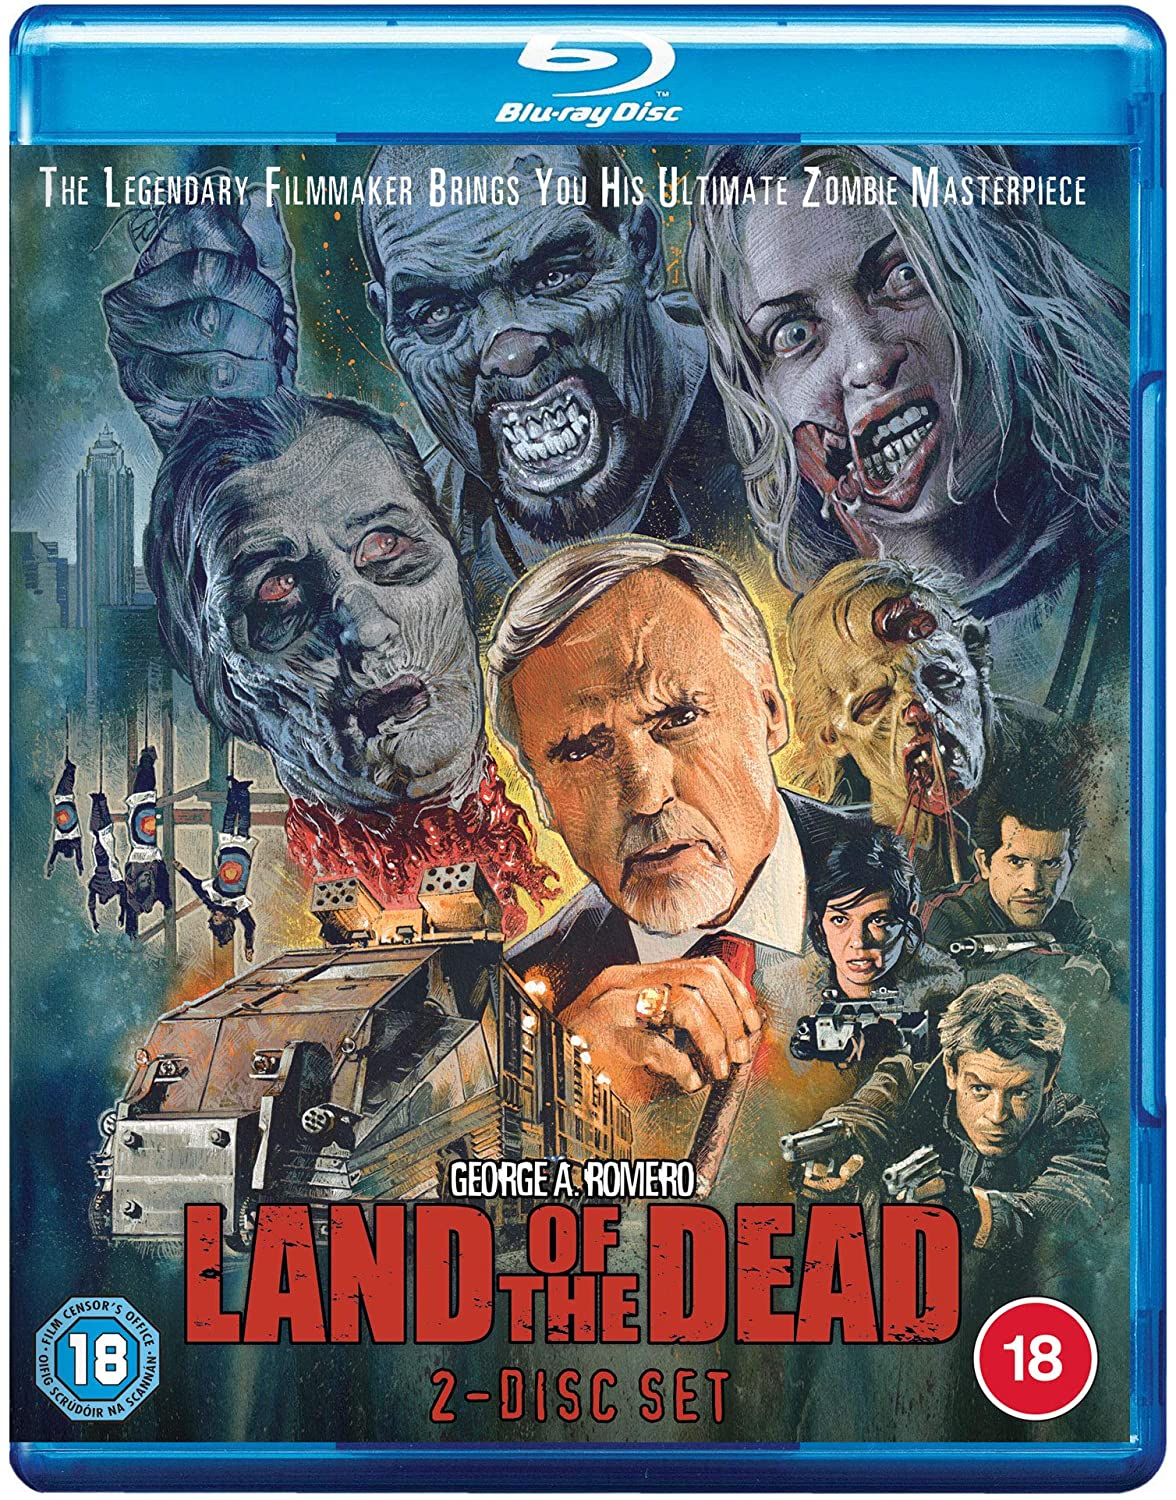 Fabulous Films releasing LAND OF THE DEAD with NEW Graham Humphreys art